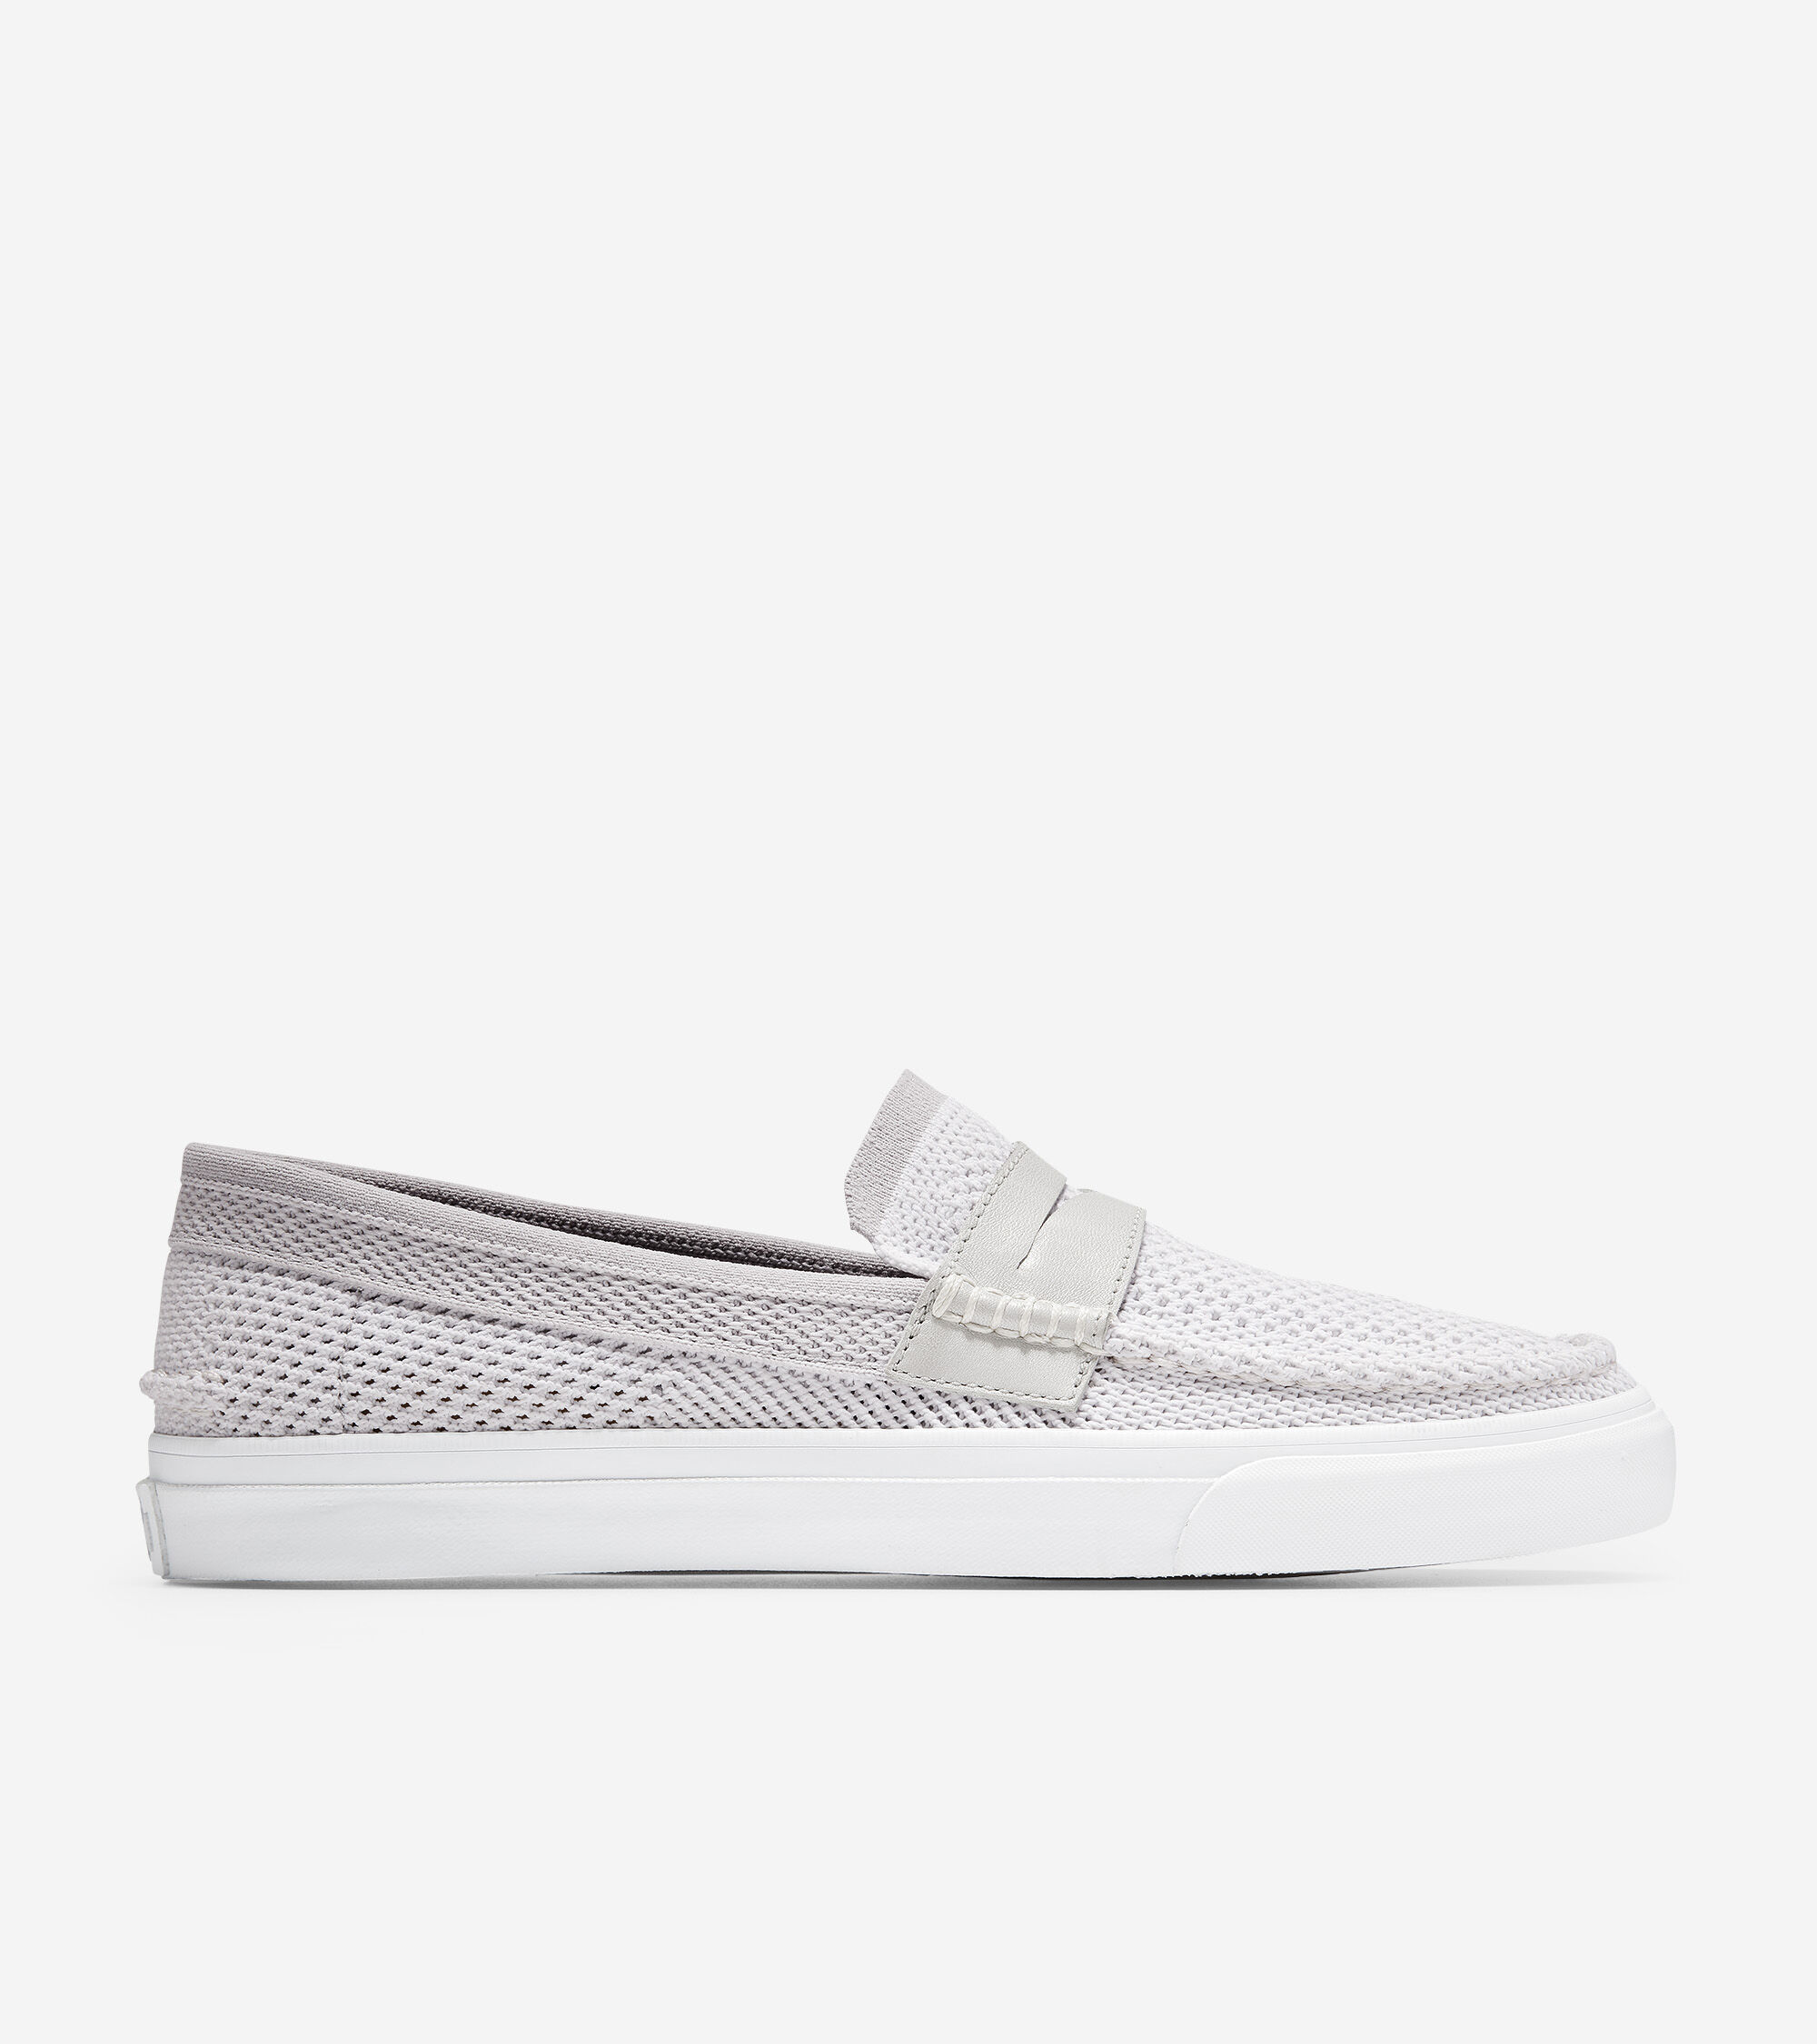 08d84b0fc32 Men s Pinch Weekender LX Loafers with Stitchlite in Gray